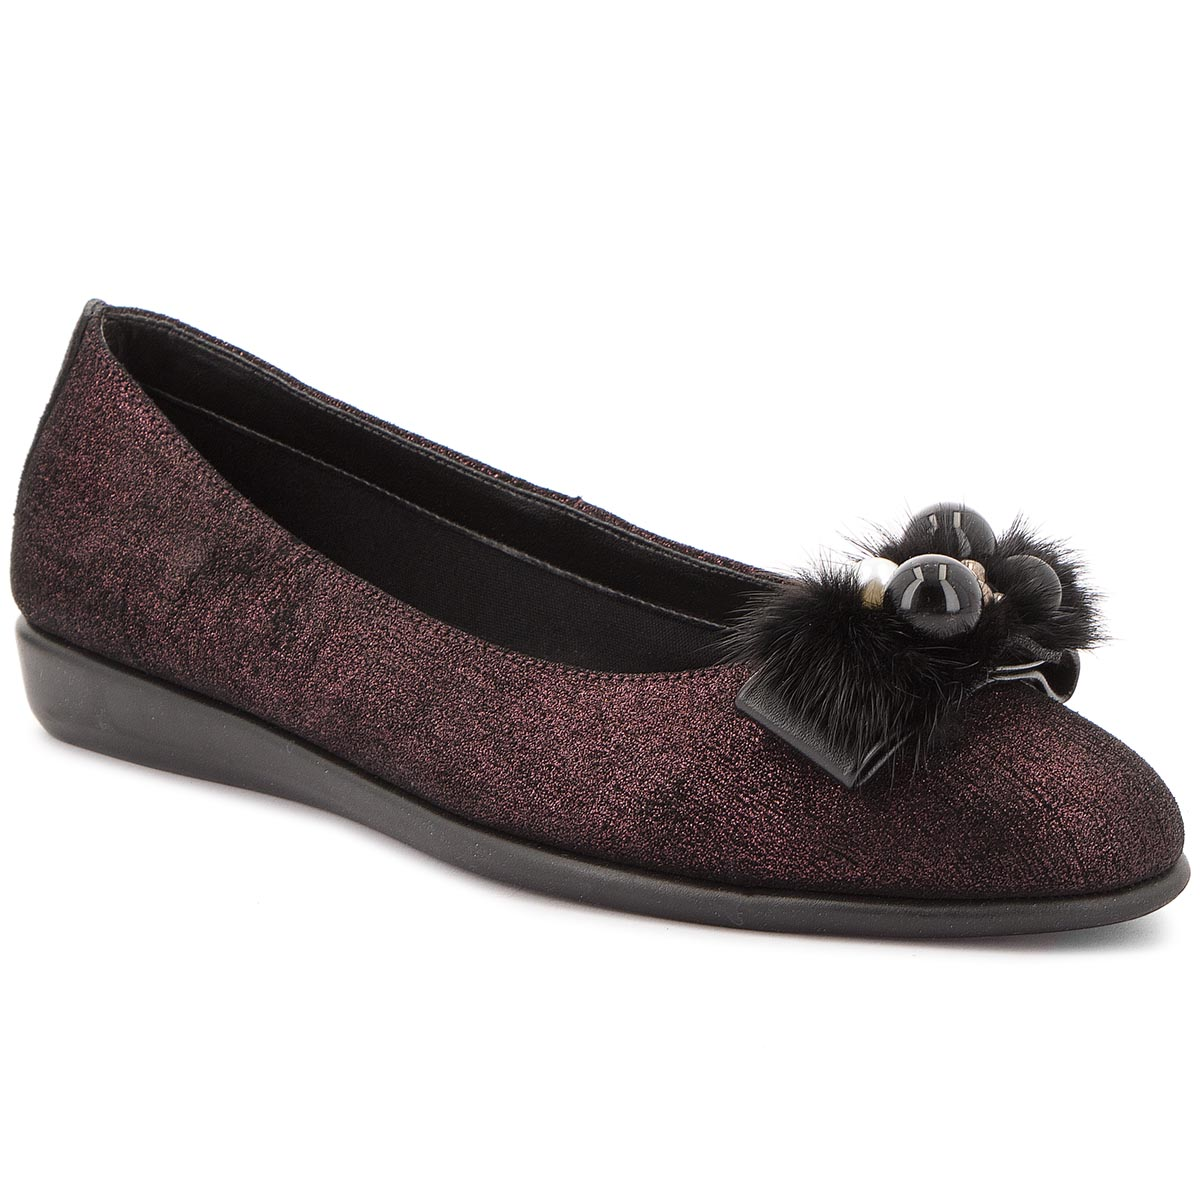 Balerini The Flexx - Chic Rise 2101/114 Bordo imagine epantofi.ro